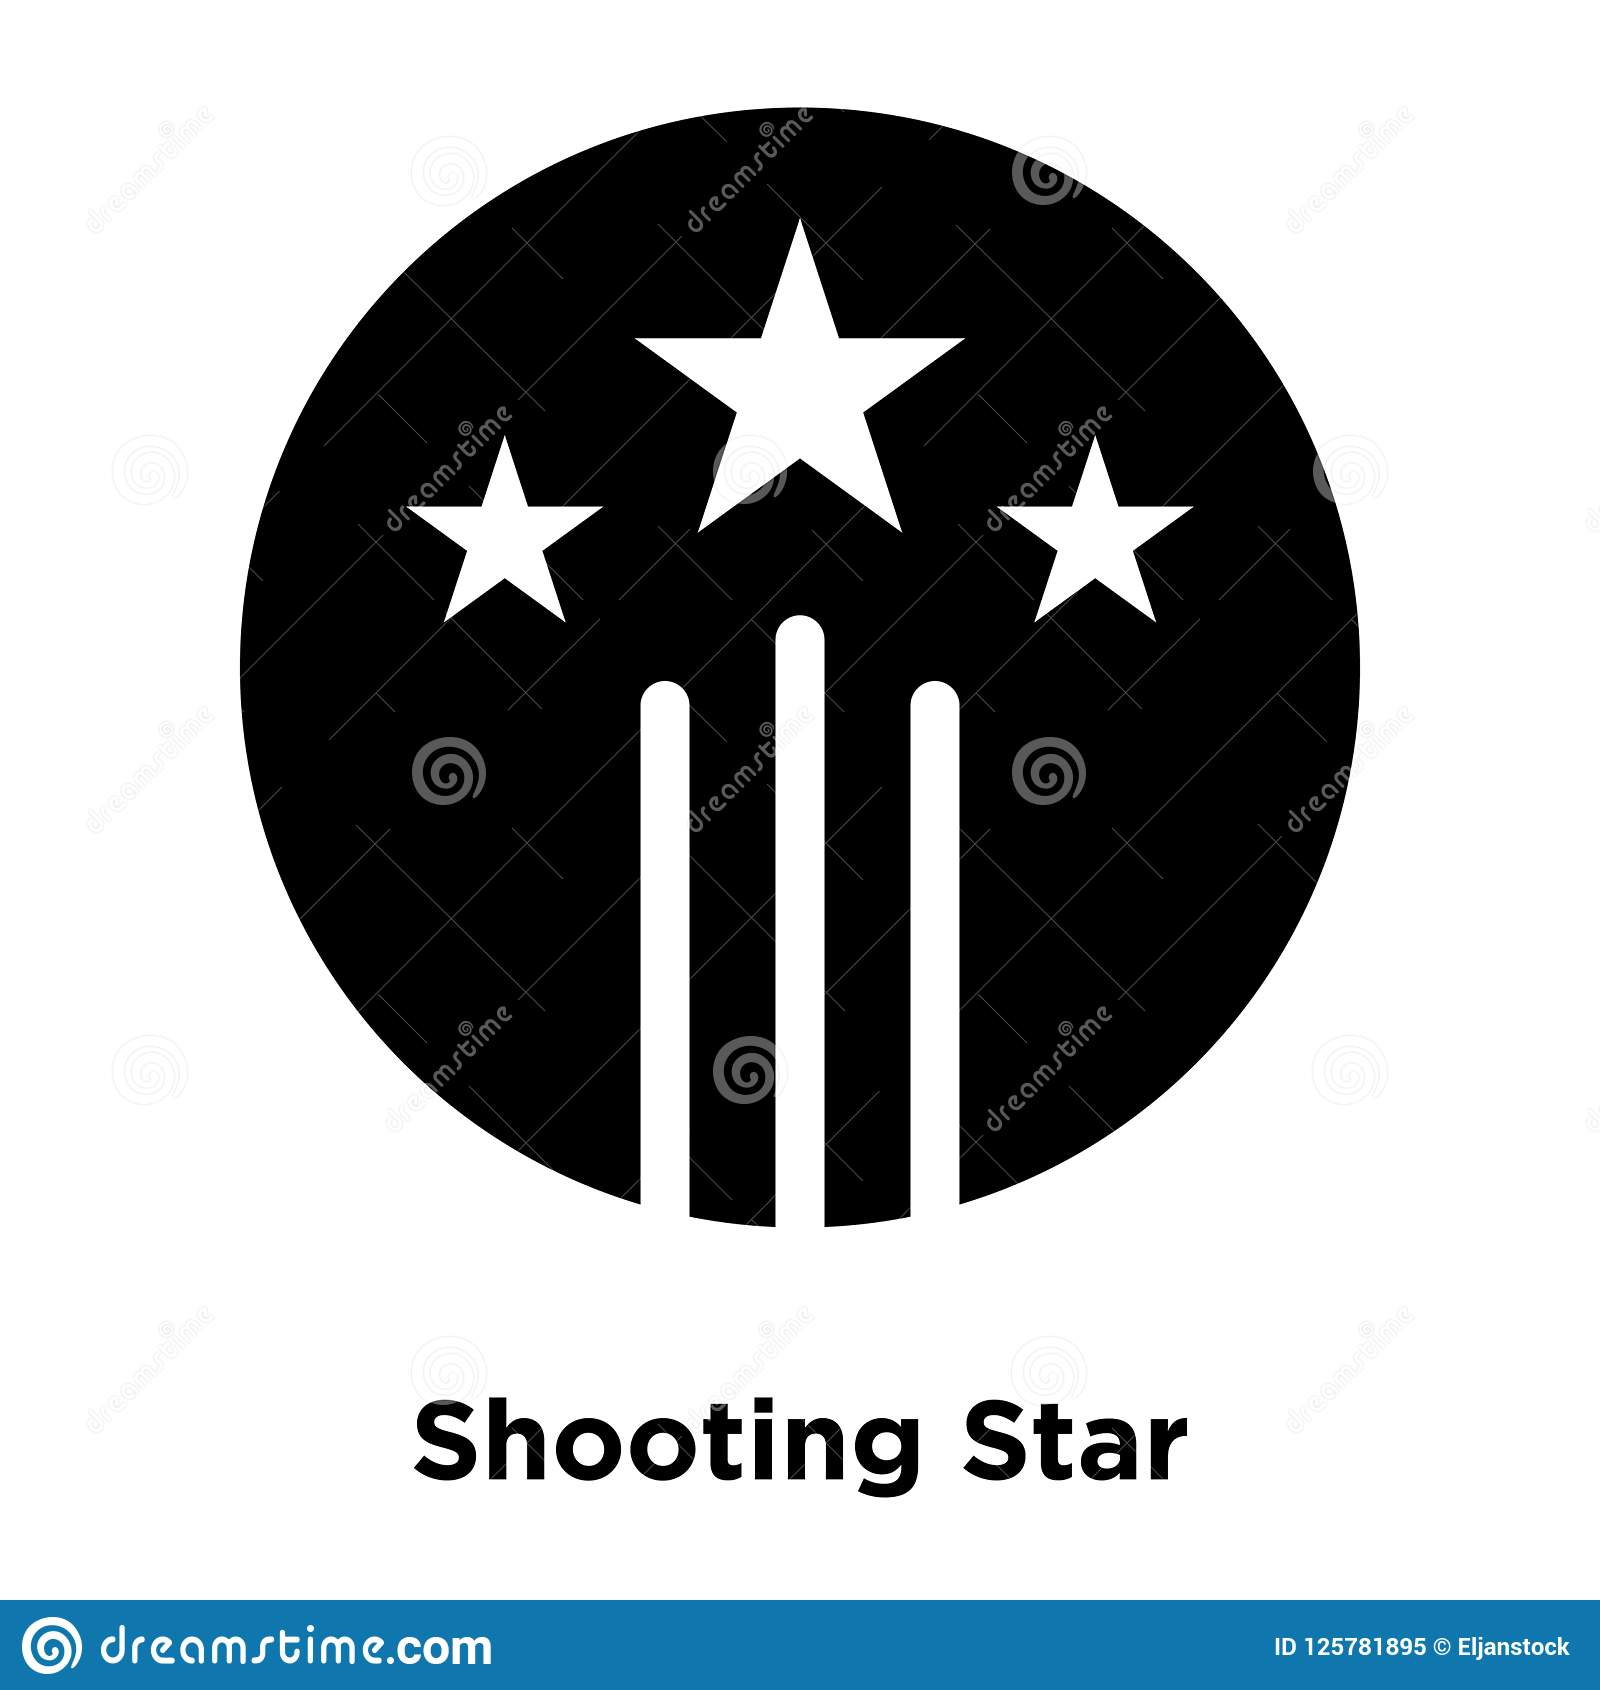 Shooting Star icon vector isolated on white background, logo con